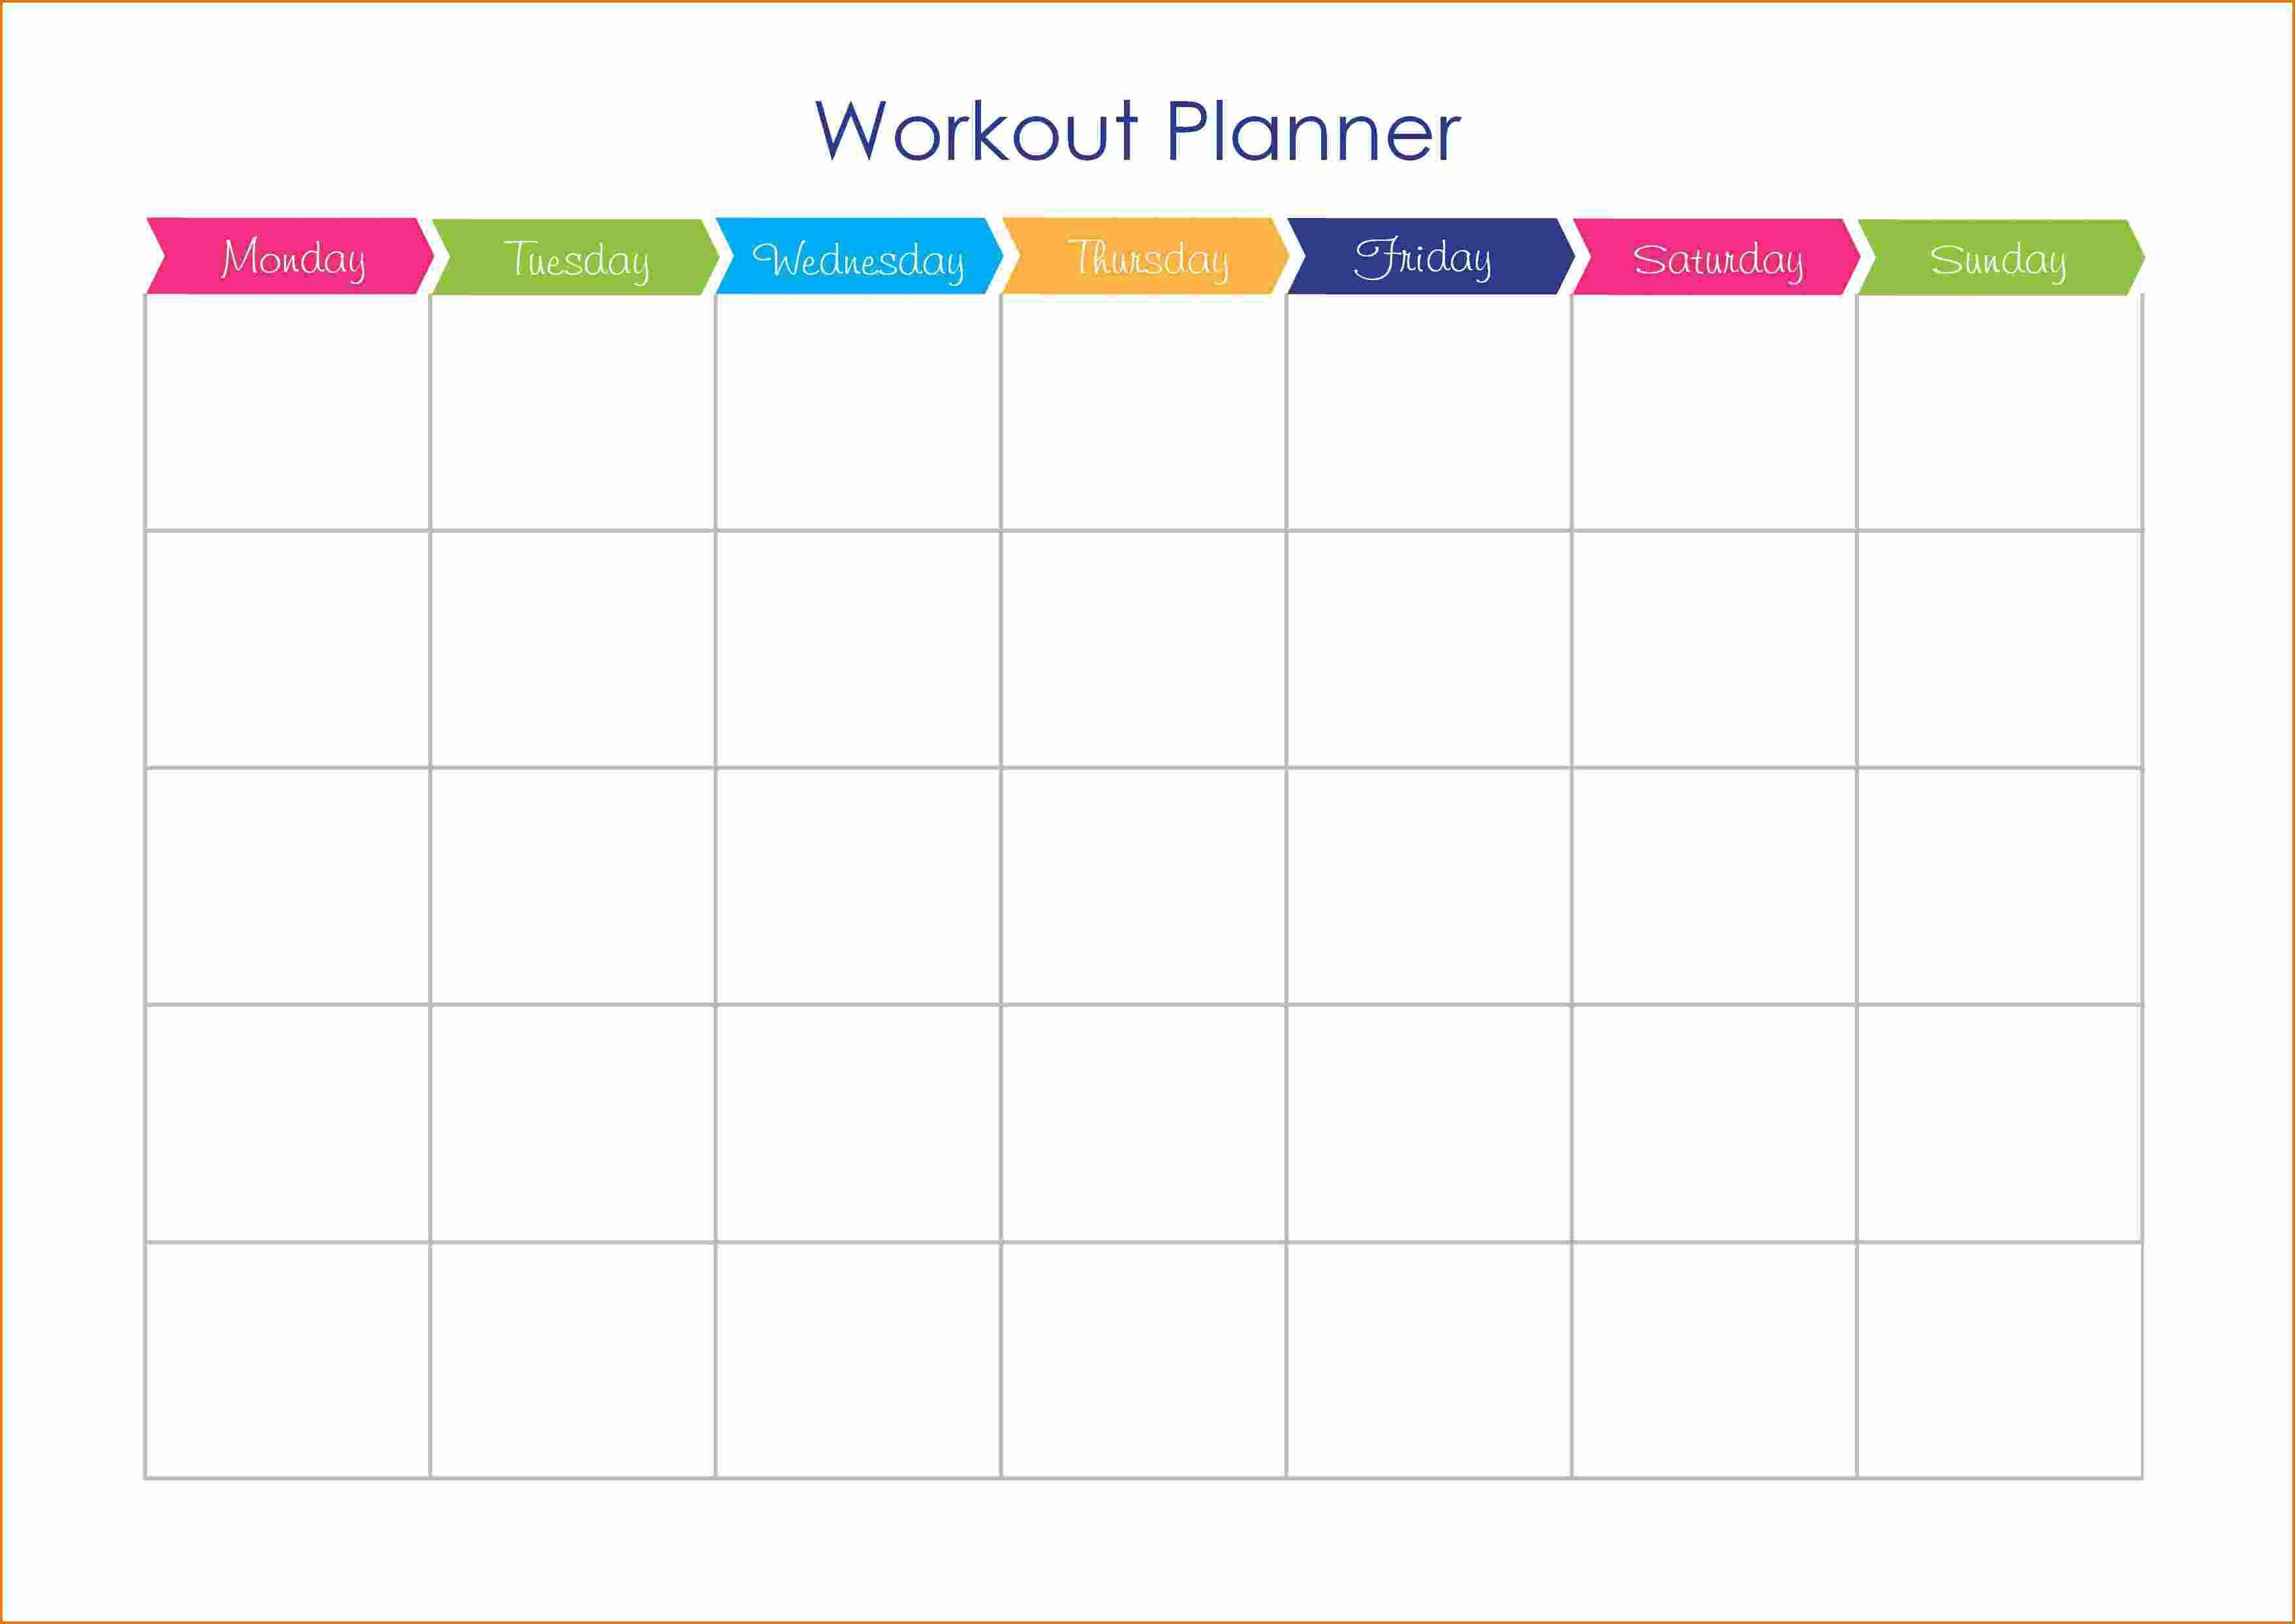 Workout Plan Calendar Template Workout And Yoga Pics in Blank Workout Schedule Template